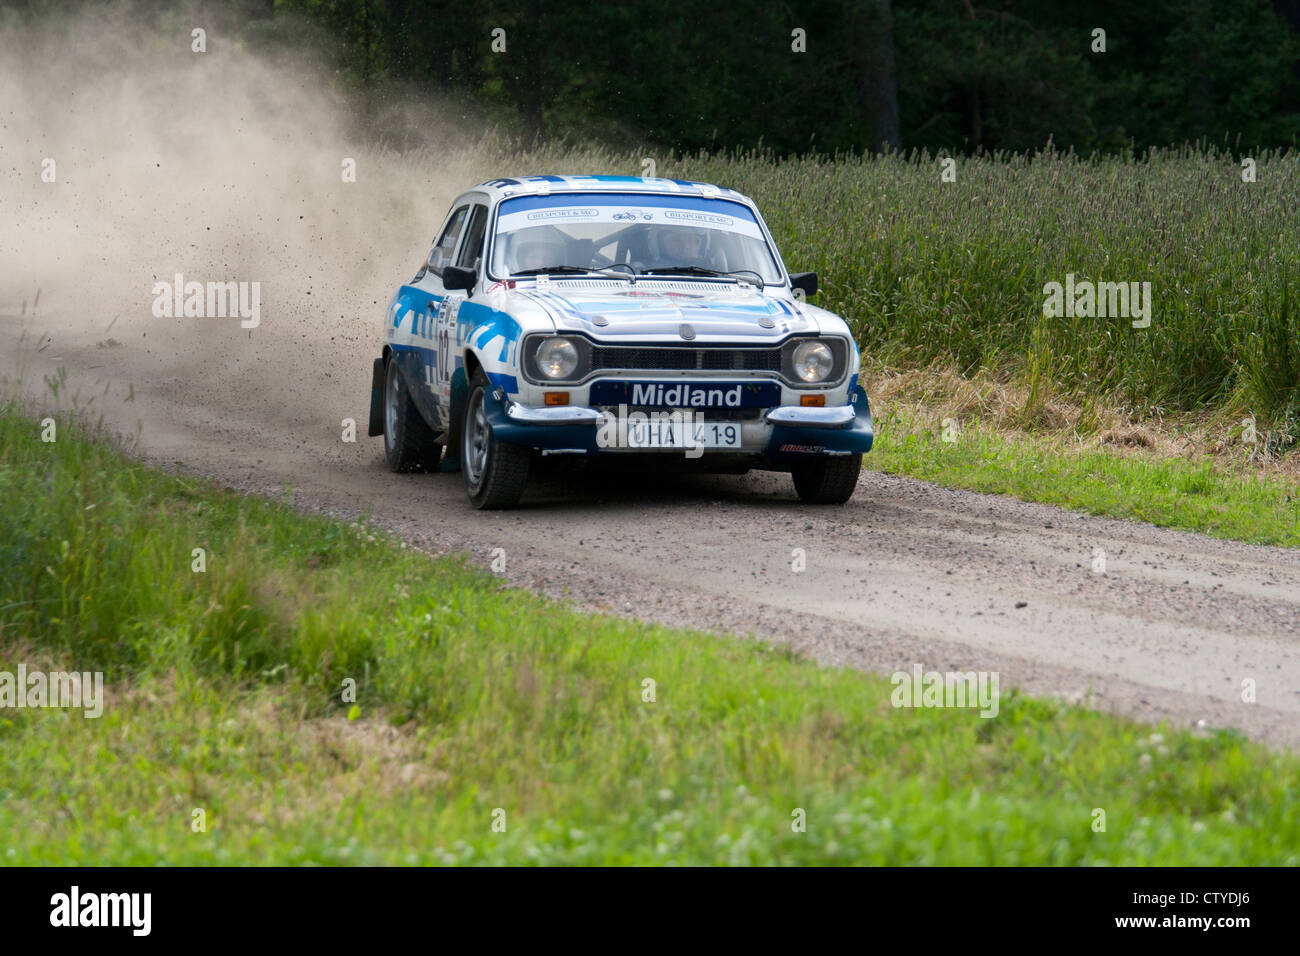 Old rally car on gravel road Stock Photo: 49775886 - Alamy